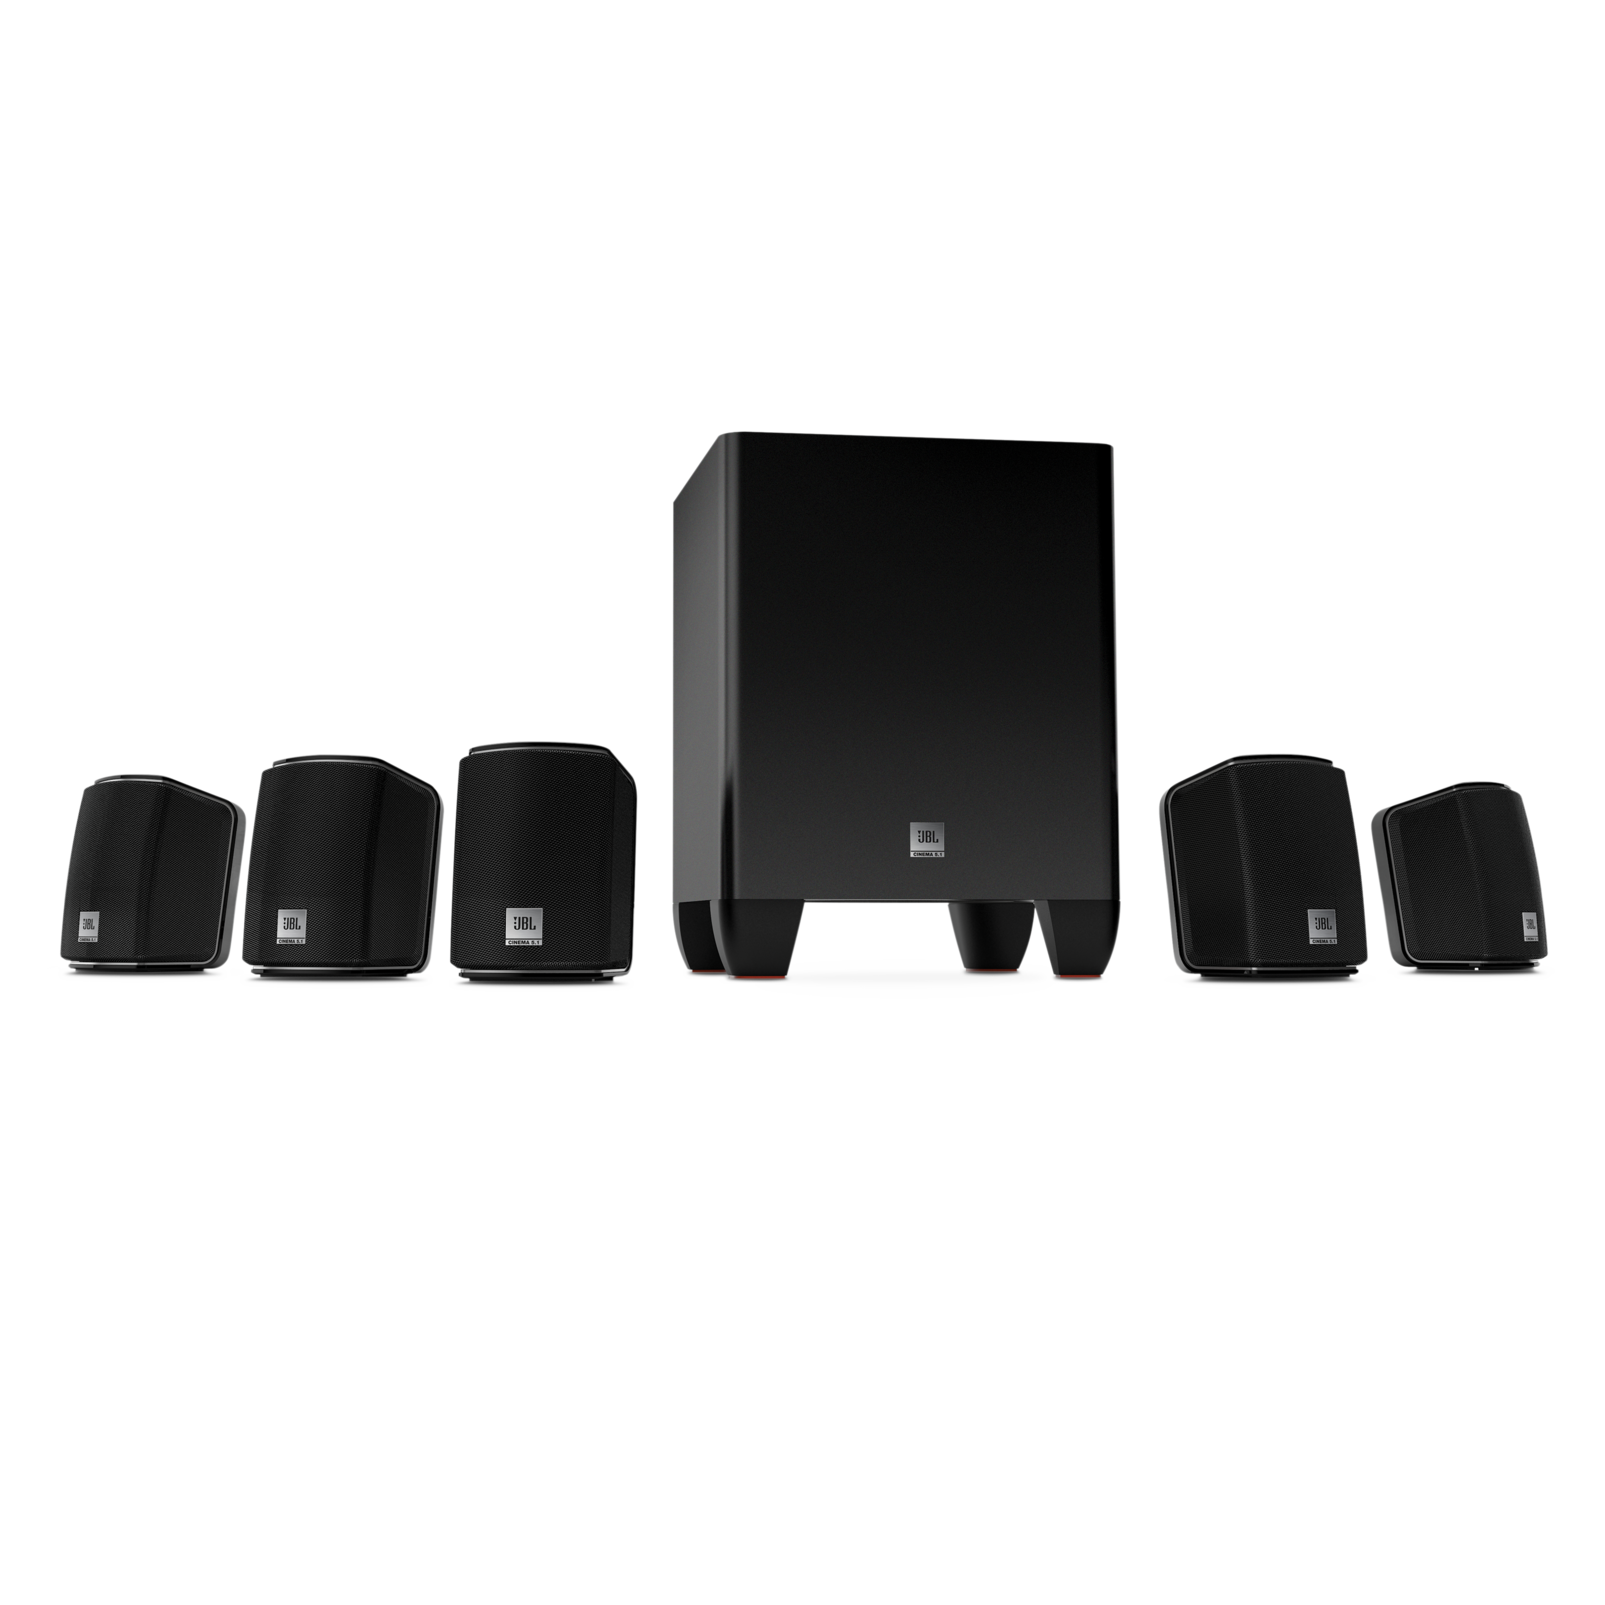 cinema 510 5 1 home theater speaker system with powered subwoofer rh jbl com